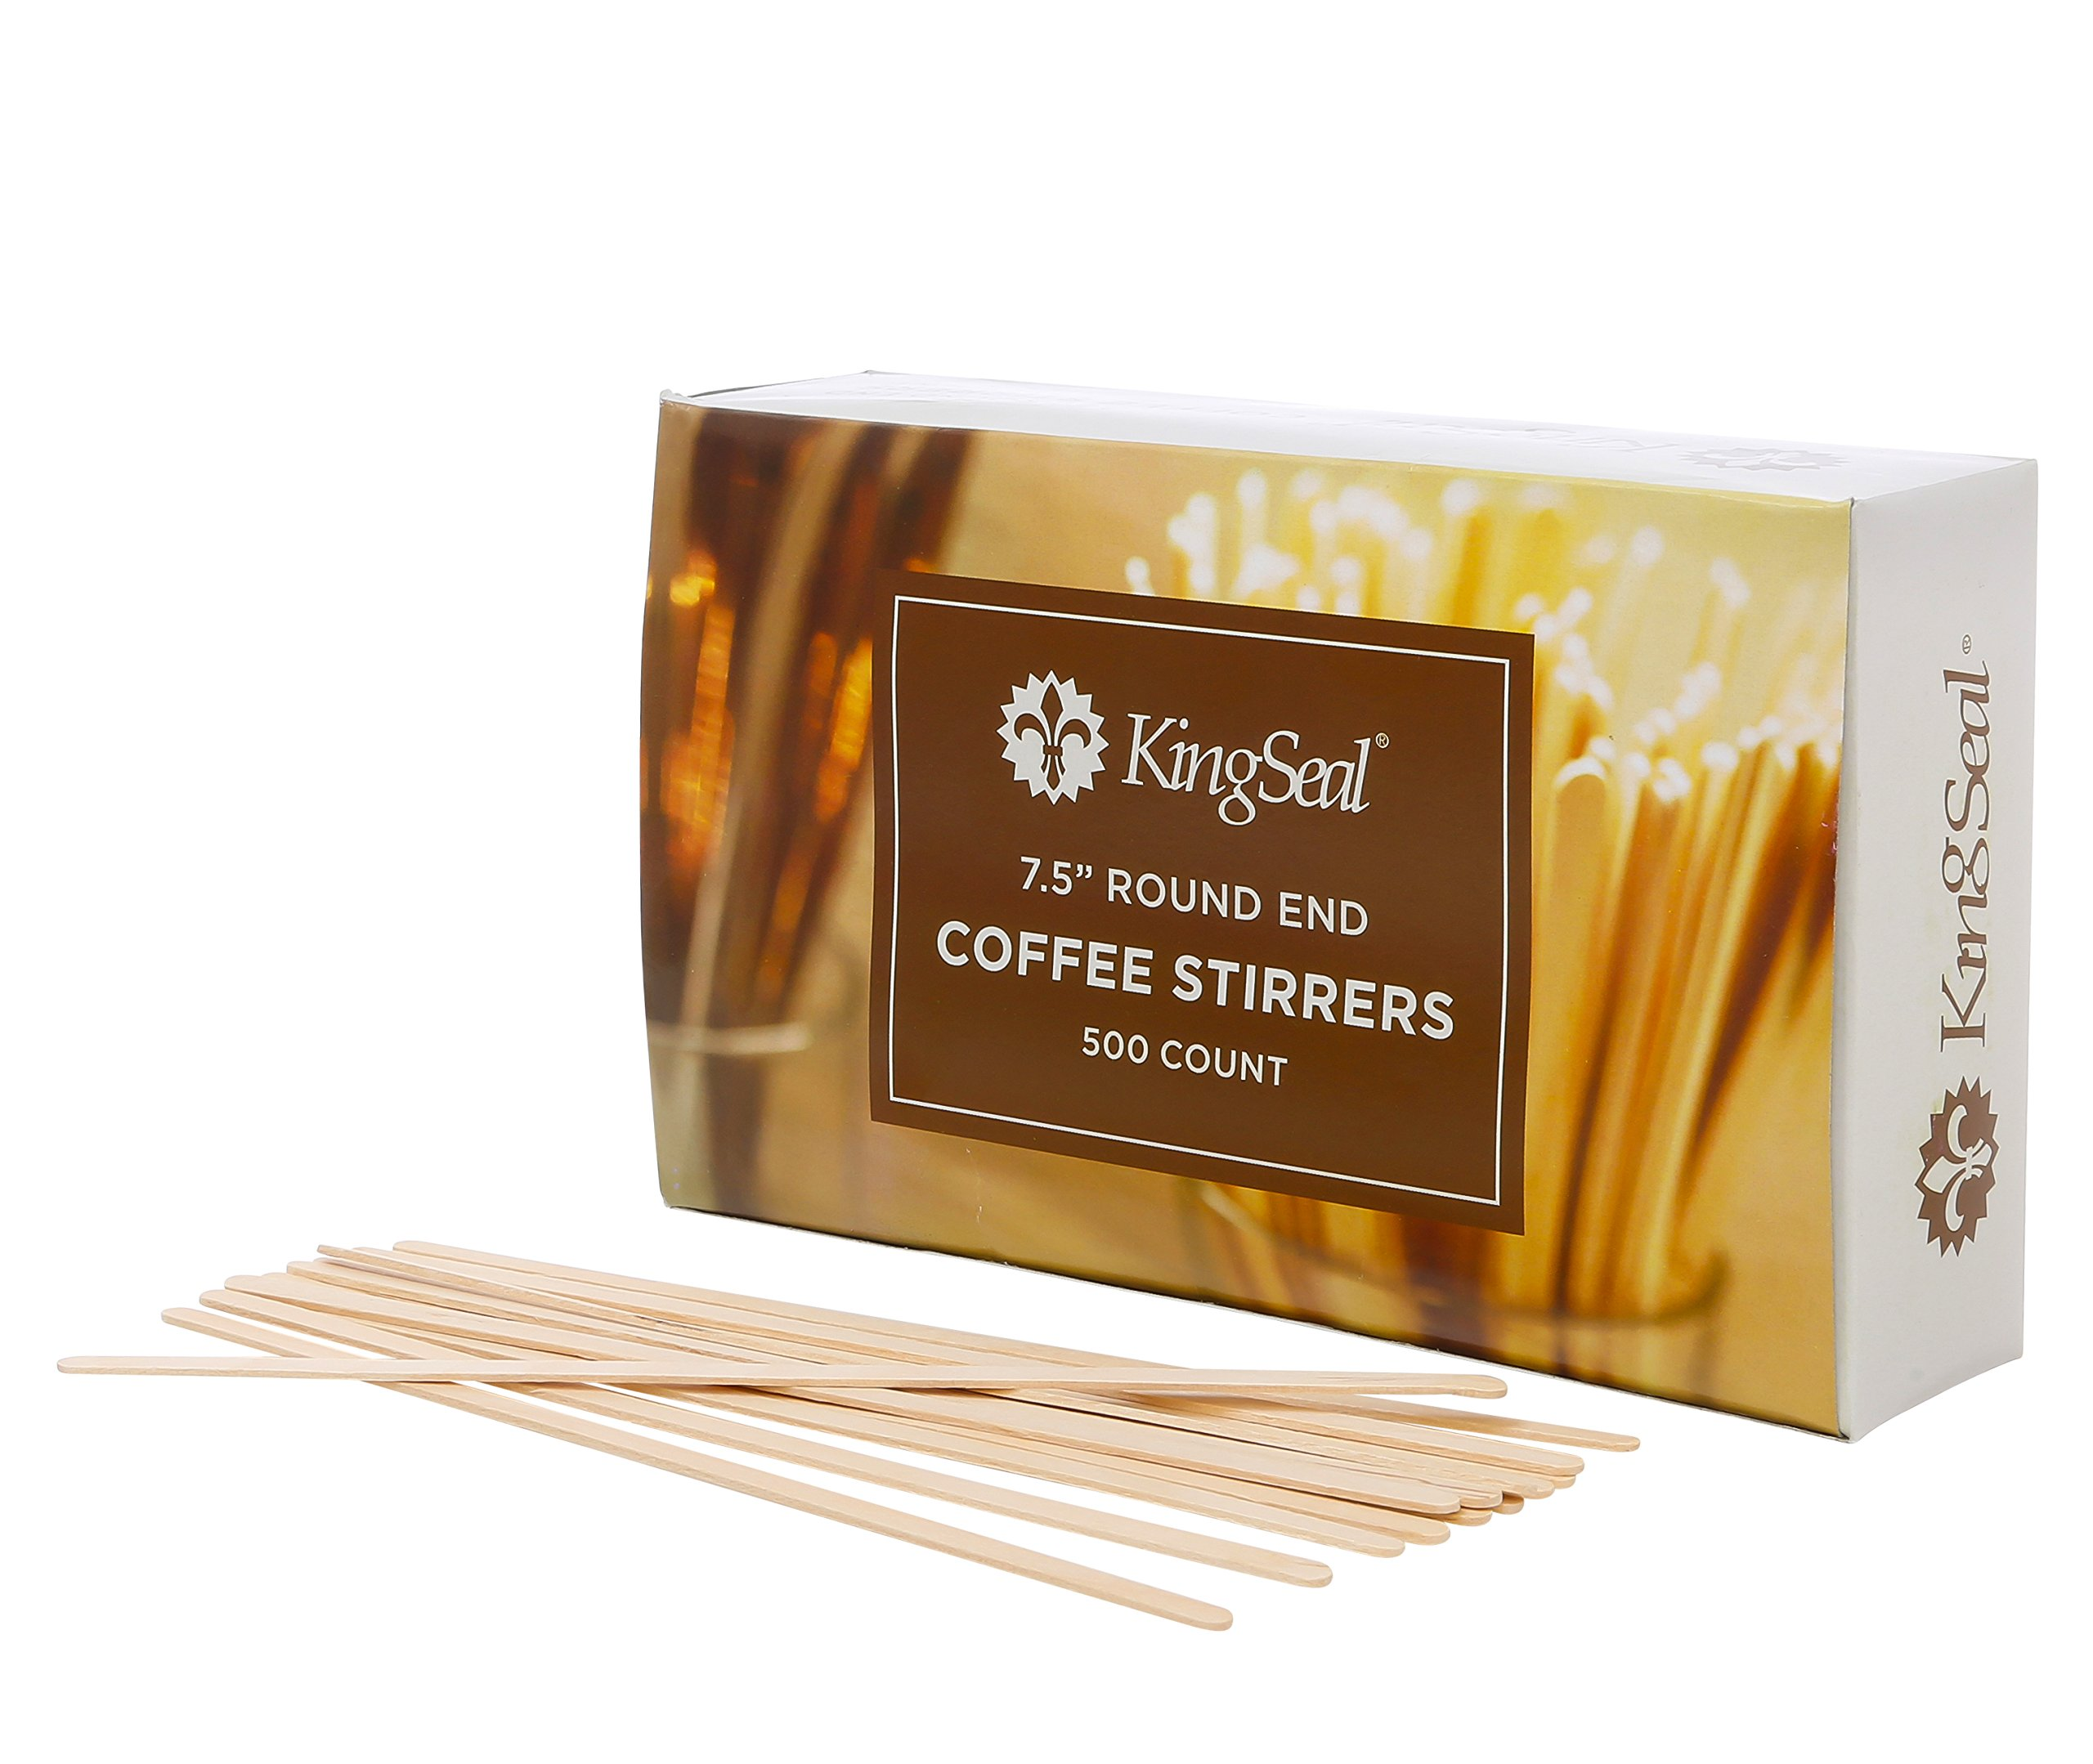 KingSeal Natural Birch Wood Coffee Beverage Stir Sticks, Stirrers, Round End - 7.5 Inches, 10 Packs of 500 each